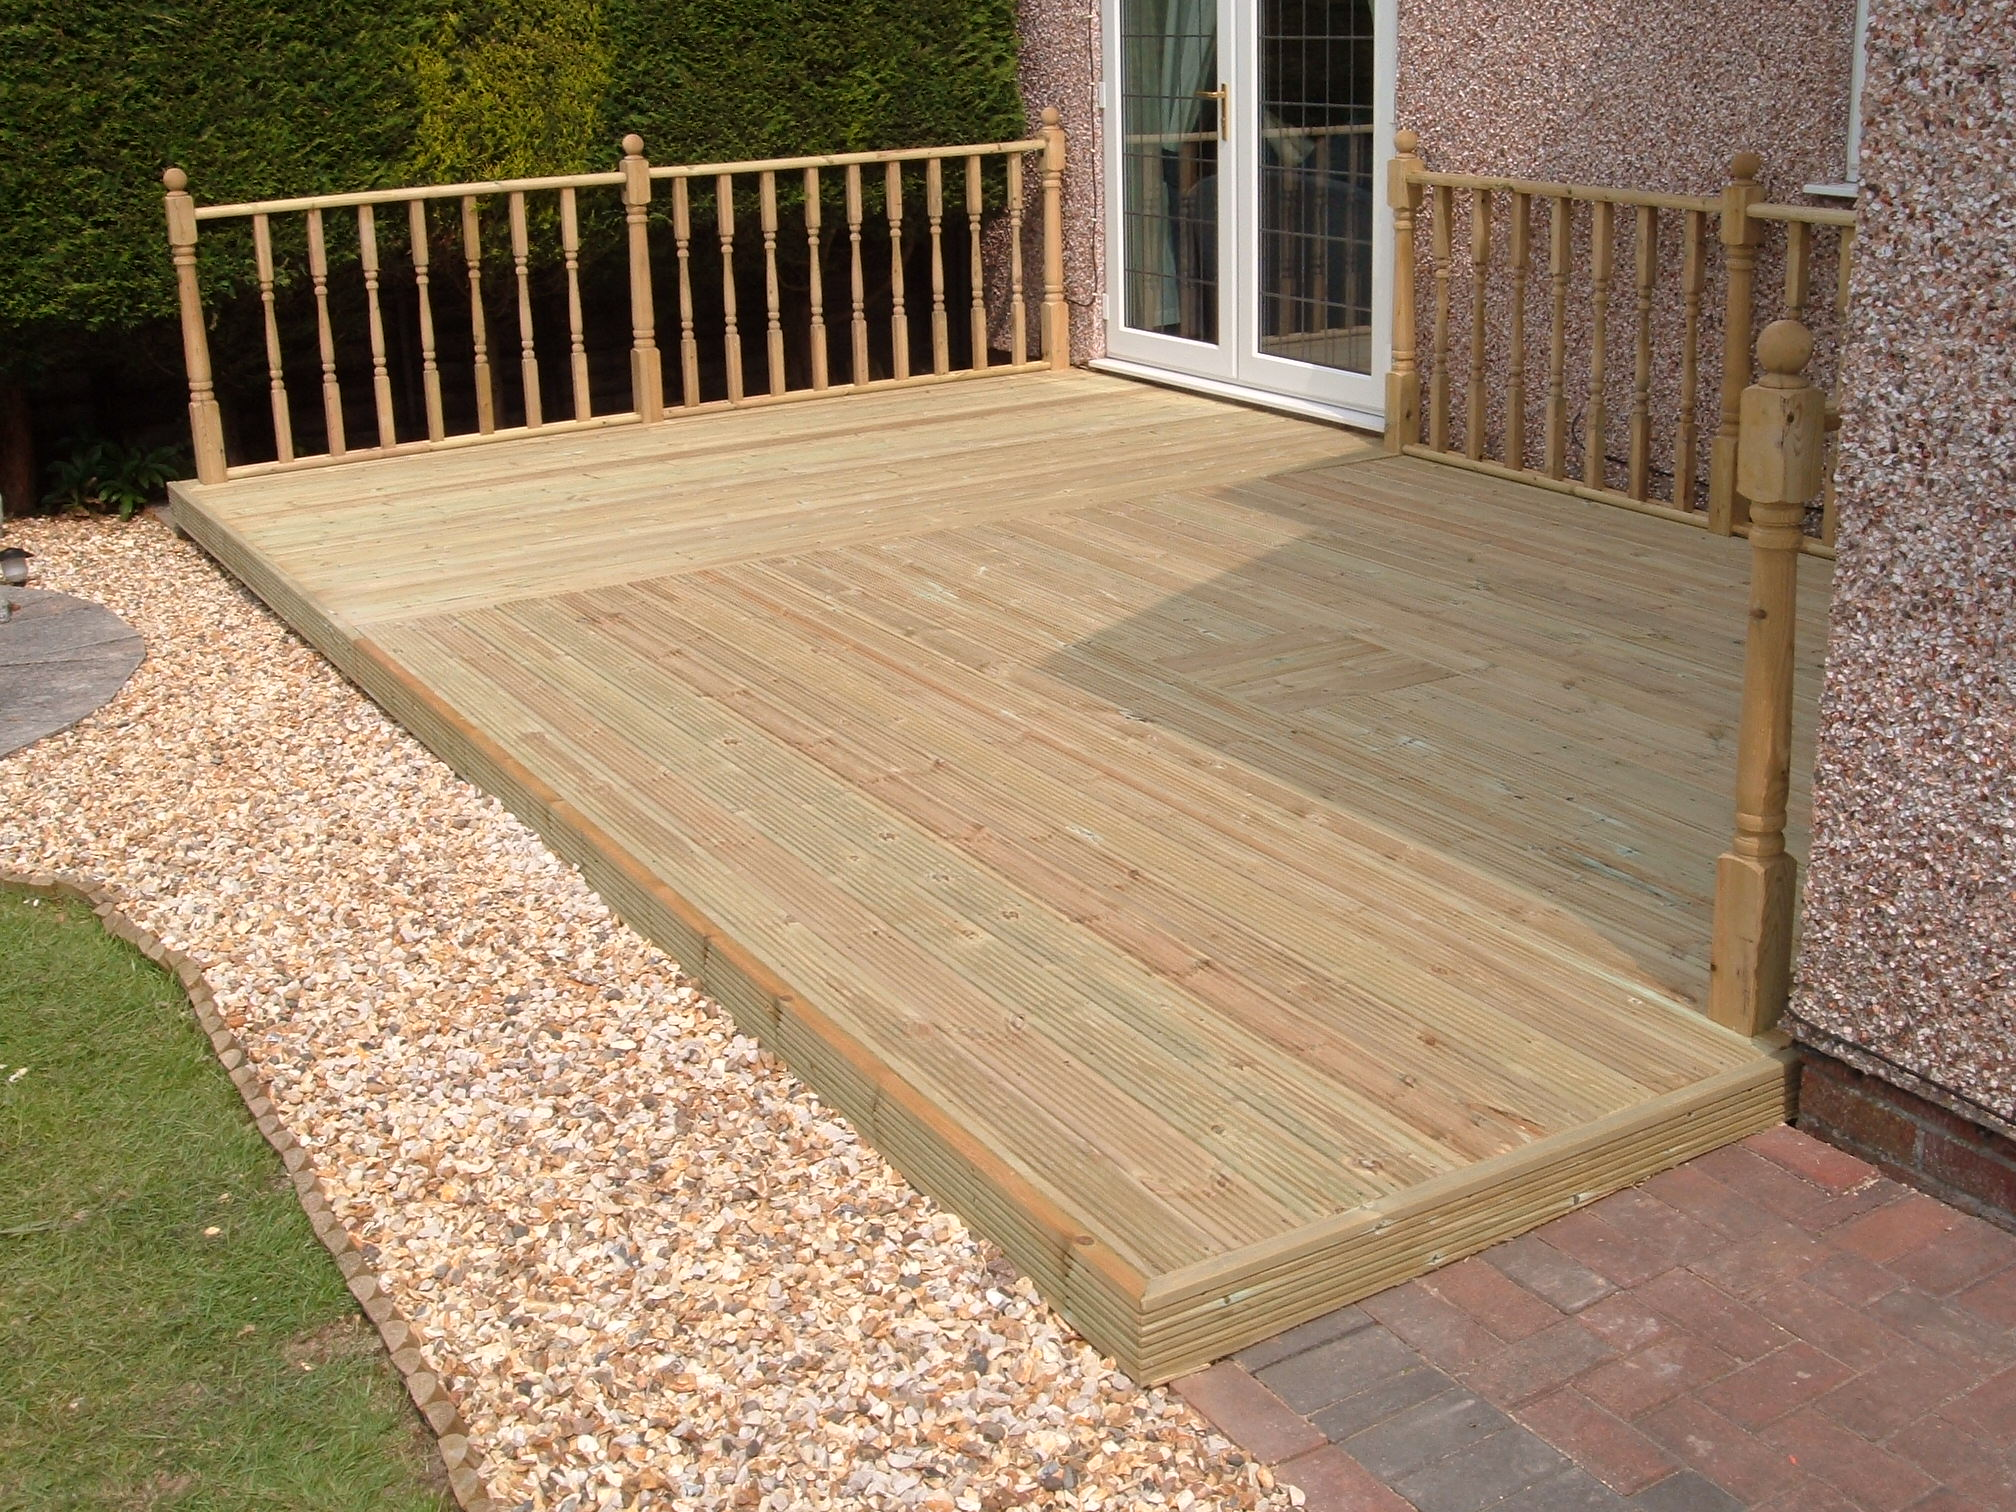 Greater driveways cheadle hulme decking for Garden deck ideas designs